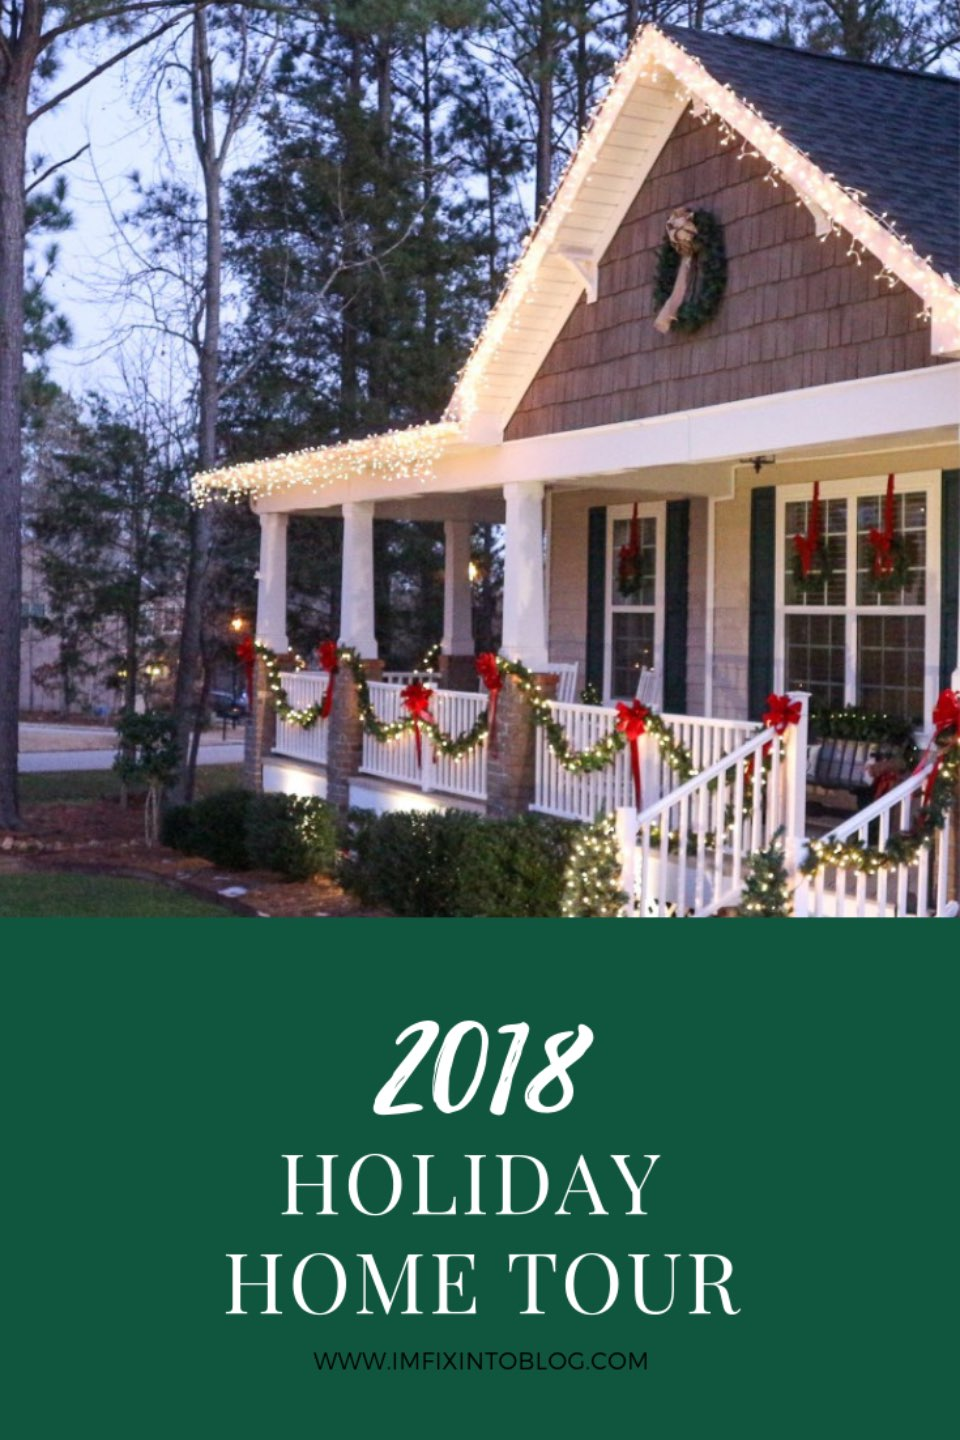 2018 Holiday Home Tour - I'm Fixin' To - @mbg0112